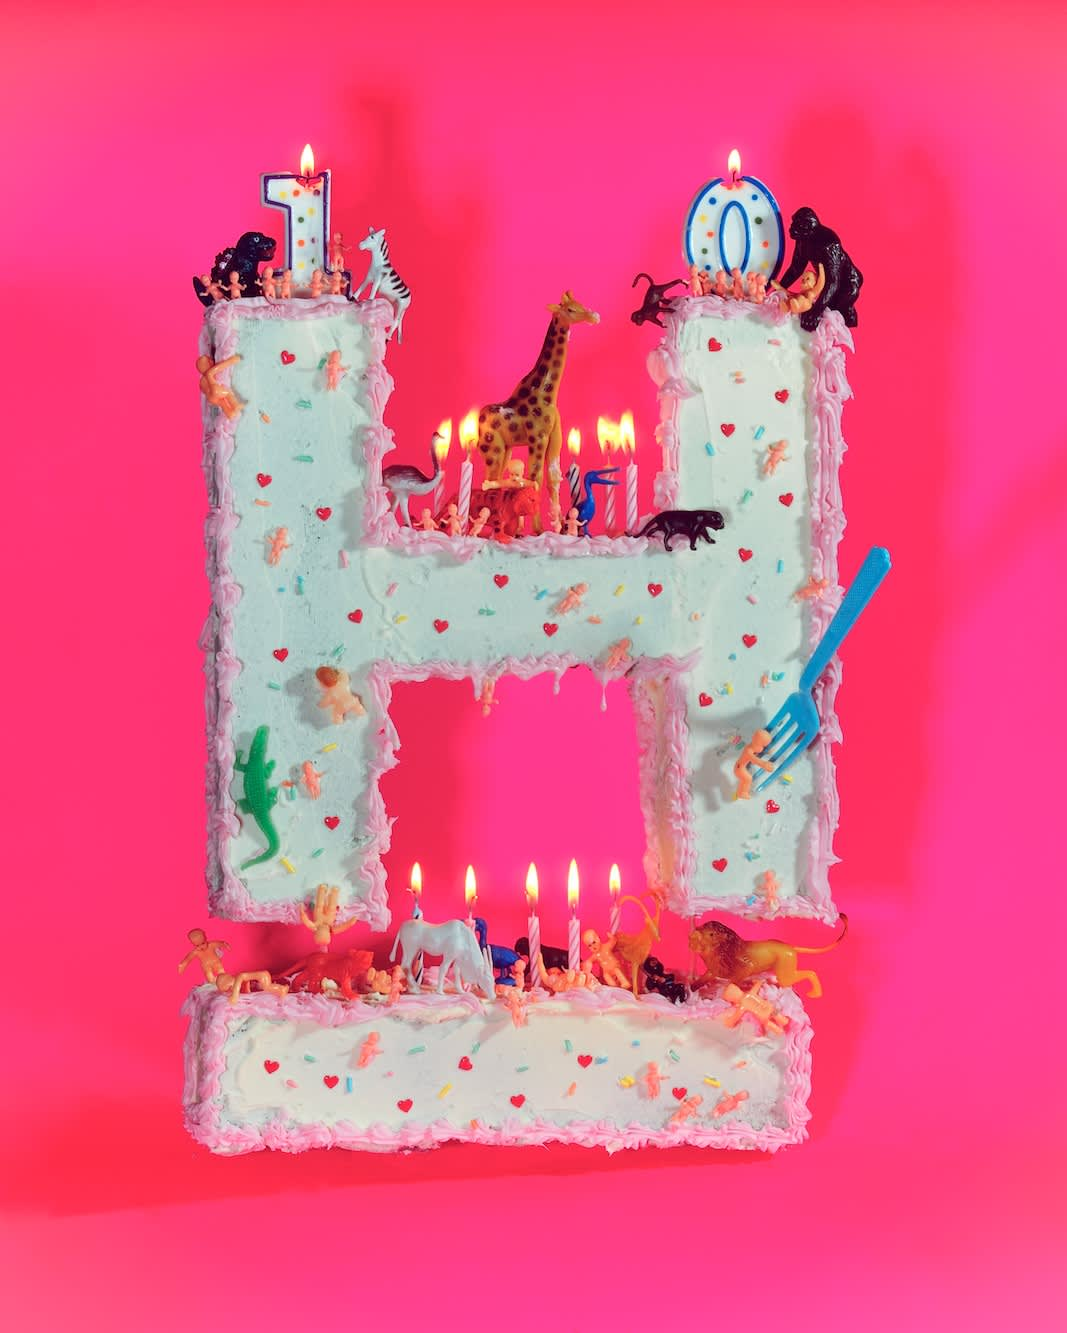 10th anniversary cake for Hyphen magazine cover